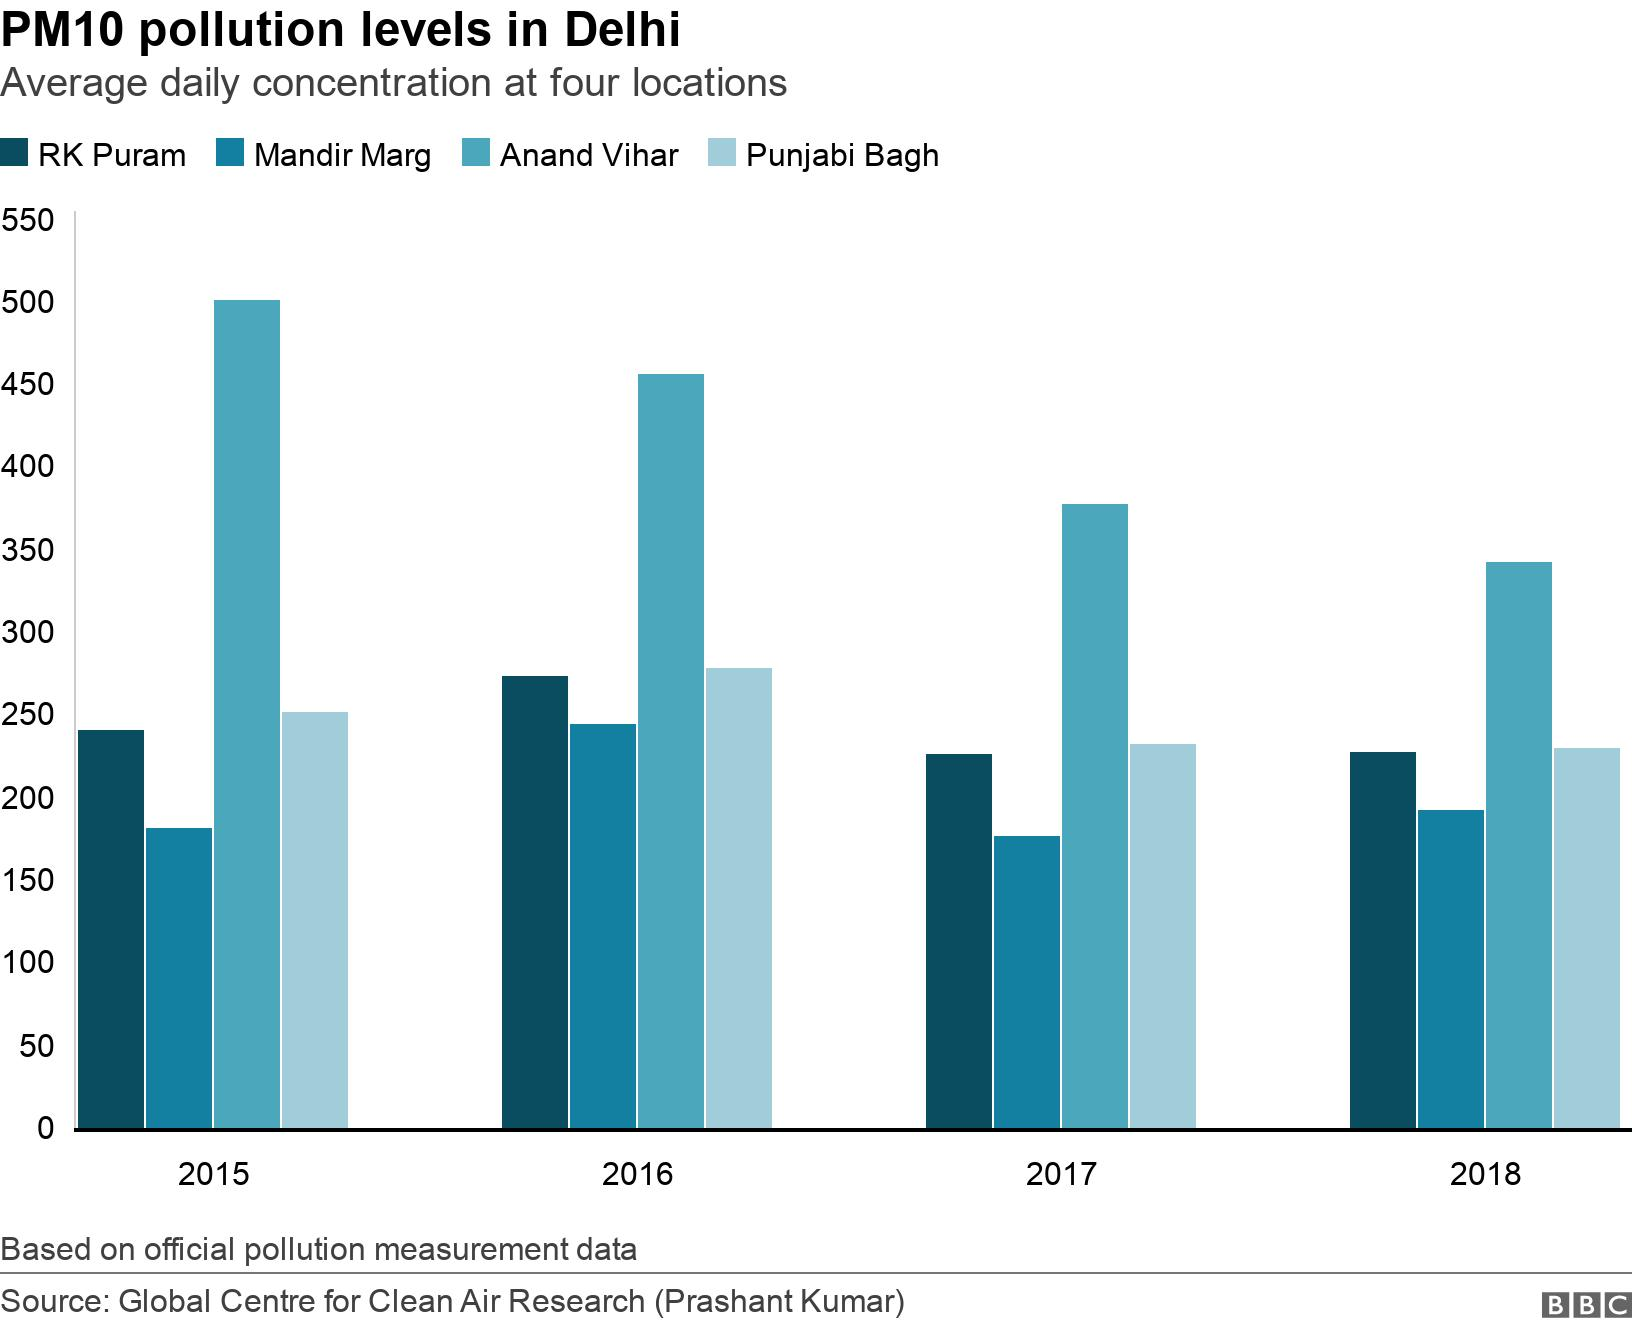 PM10 pollution levels in Delhi. Average daily concentration at four locations.  Based on official pollution measurement data.